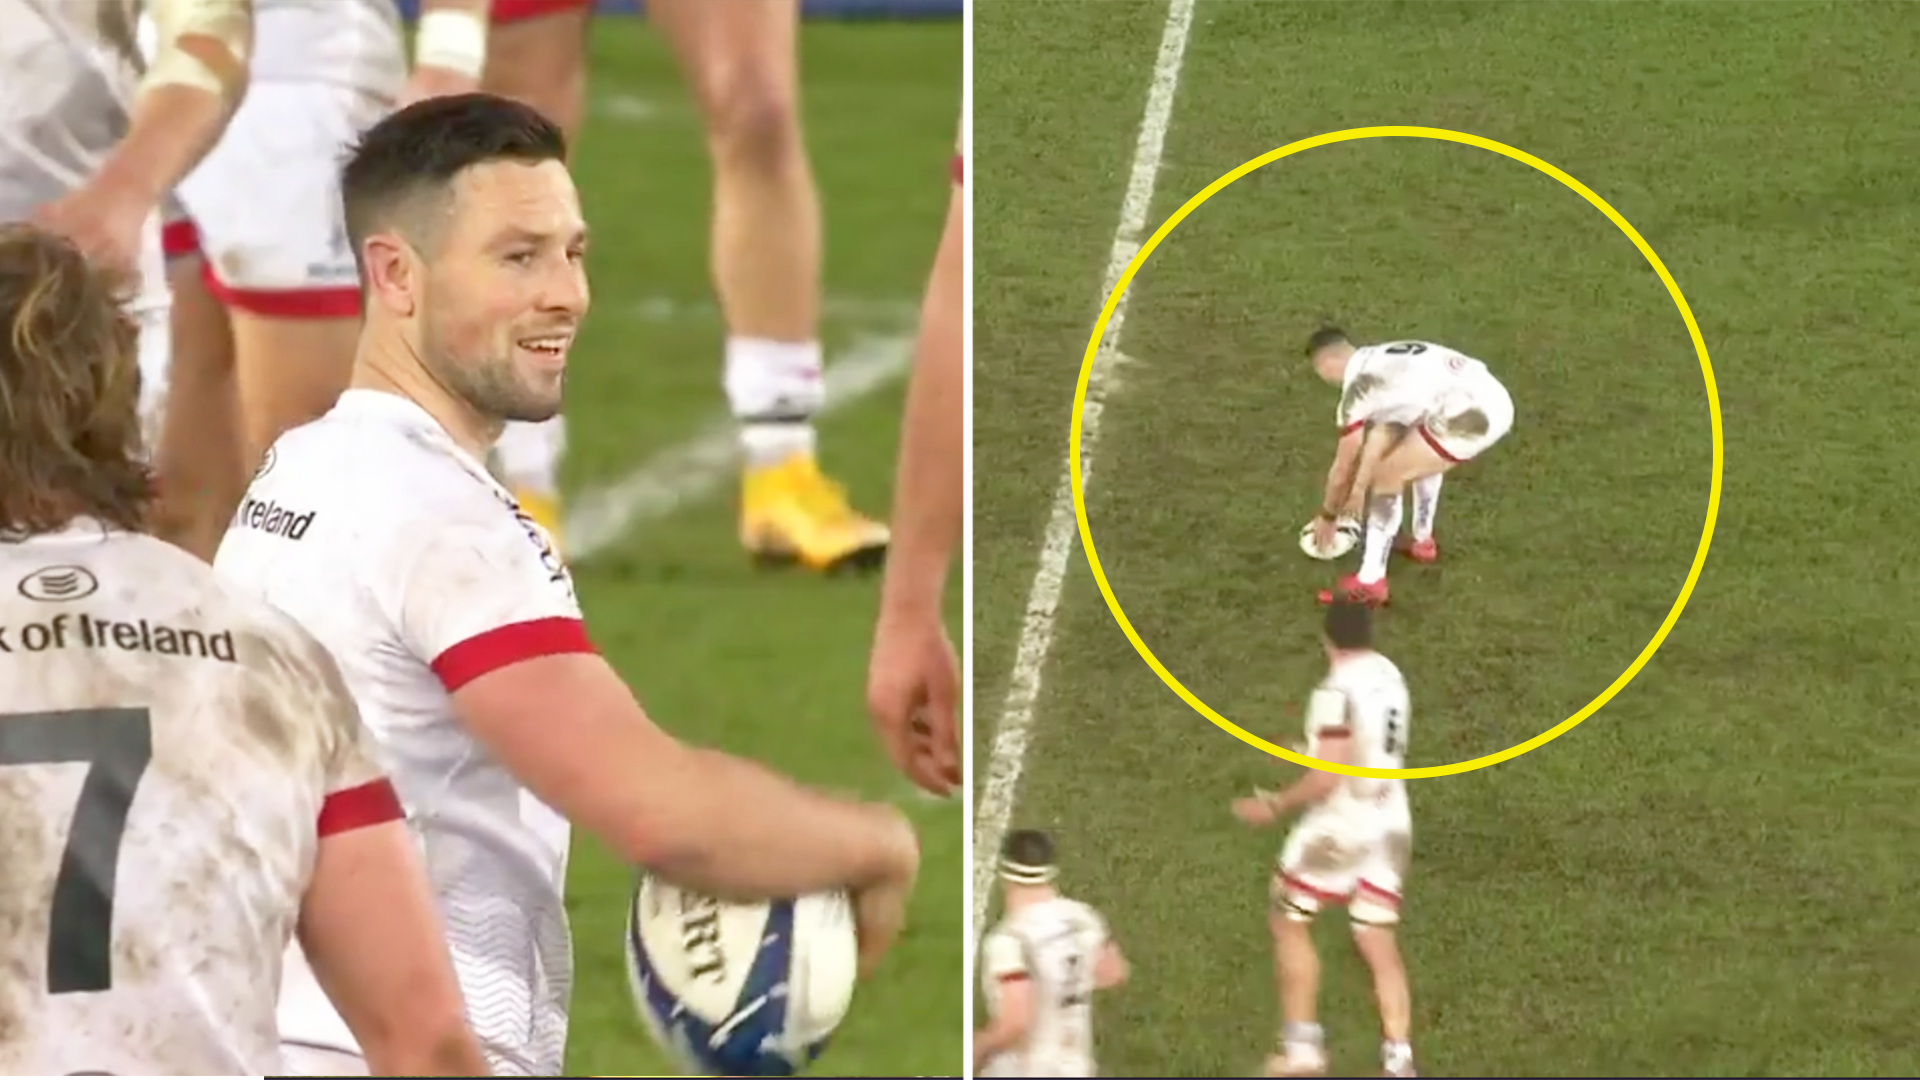 John Cooney pays the ultimate price for shameless gamesmanship tactics in embarrassing Champions Cup moment